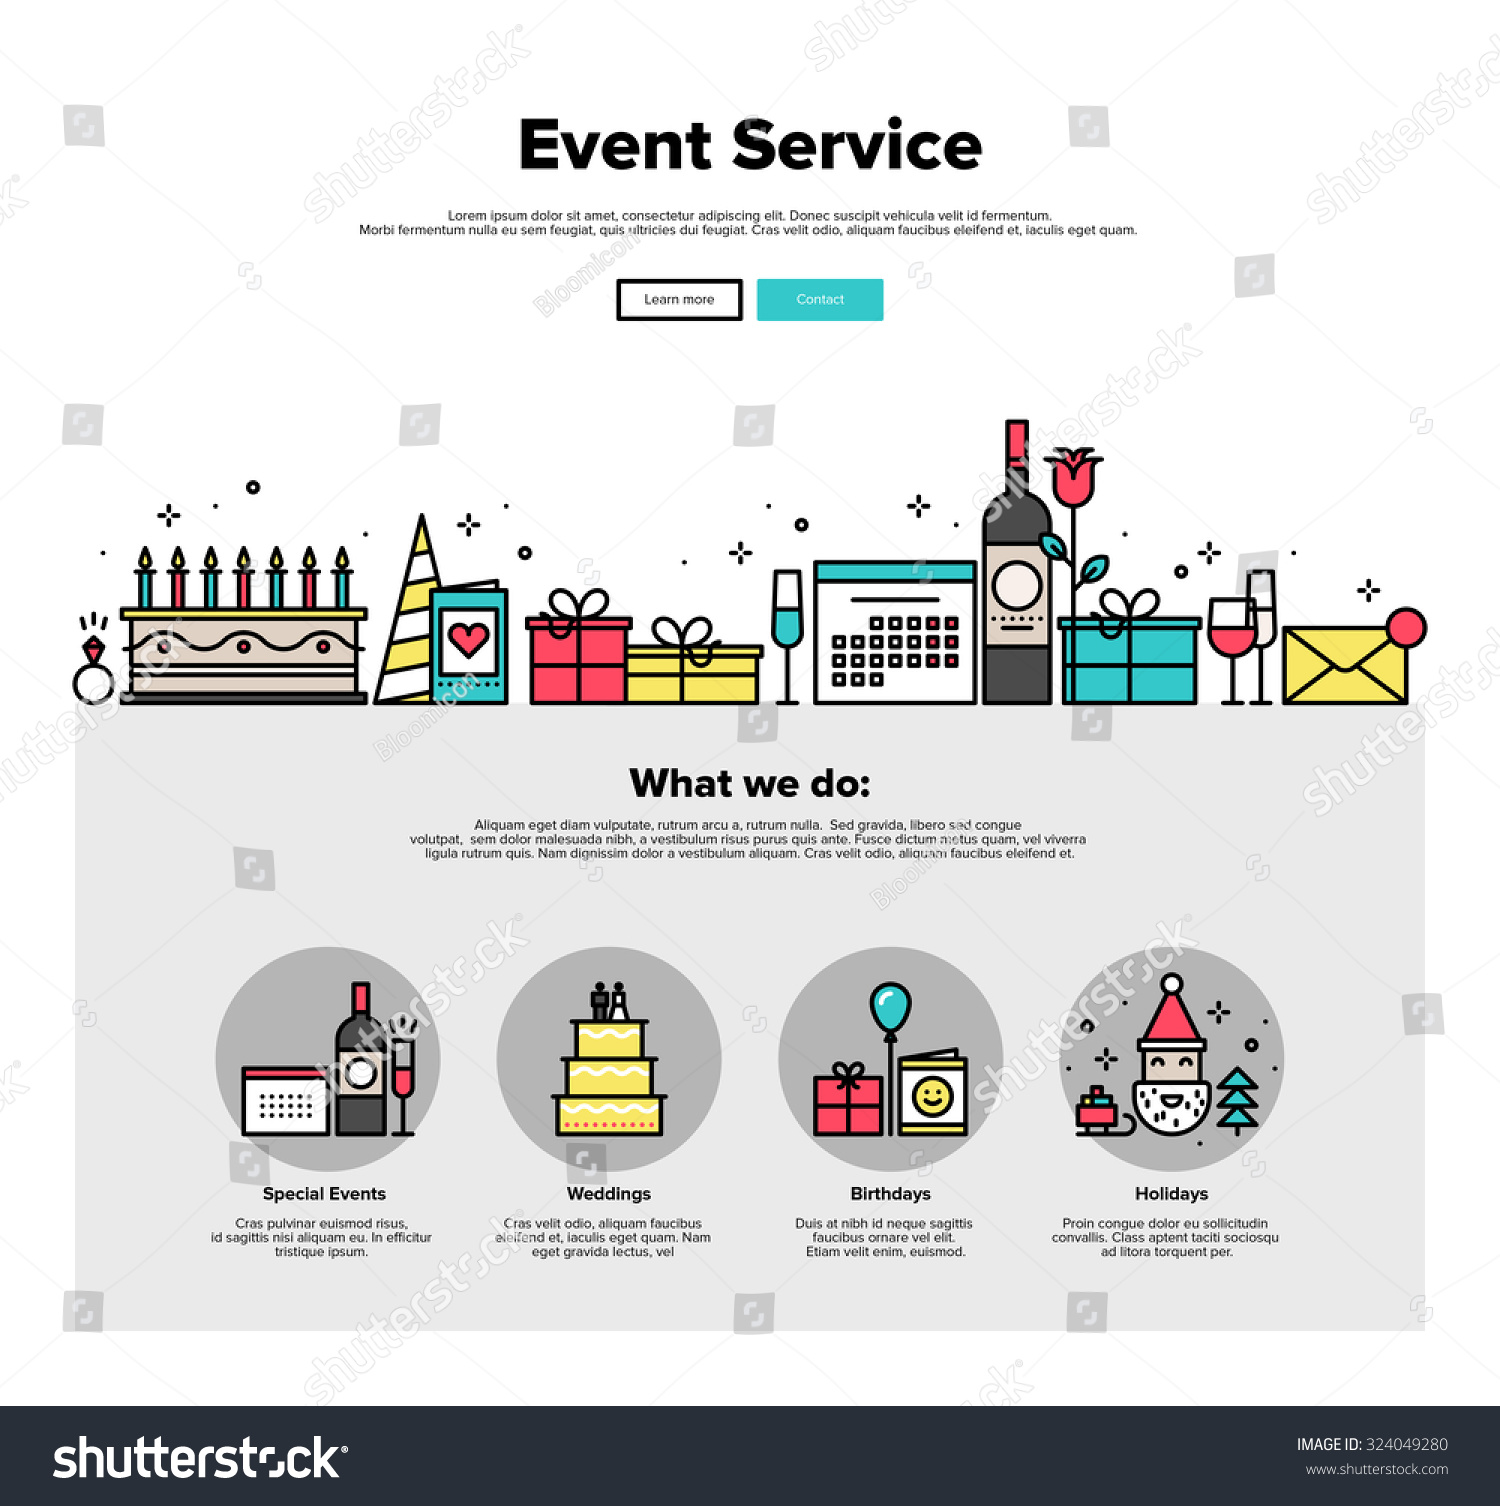 happy birthday website design ; stock-vector-one-page-web-design-template-with-thin-line-icons-of-special-event-and-happy-birthday-party-324049280